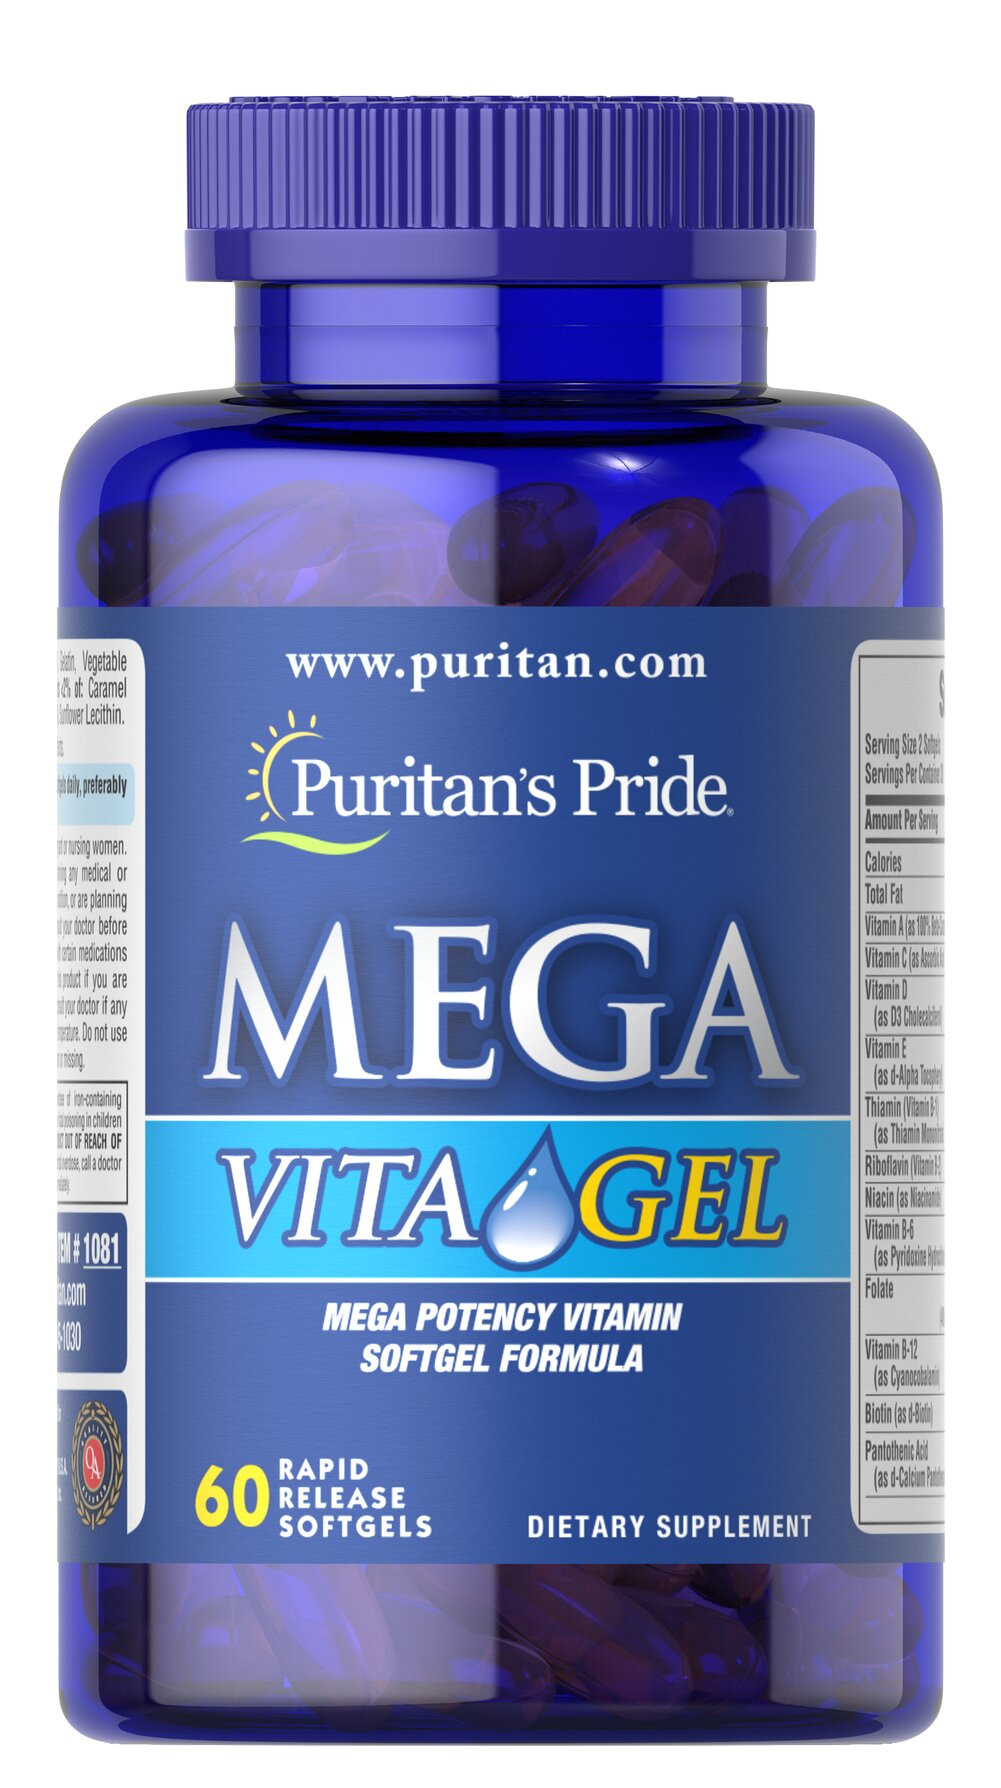 Mega Vita Gel Multivitamins <p>Mega Vital Gel is an exclusive vitamin and mineral formula. Each softgel contains 36 important nutrients without sugar, starch, artificial flavors or preservatives!  Adults can take two softgels daily with a meal.</p> 60 Softgels  $14.39